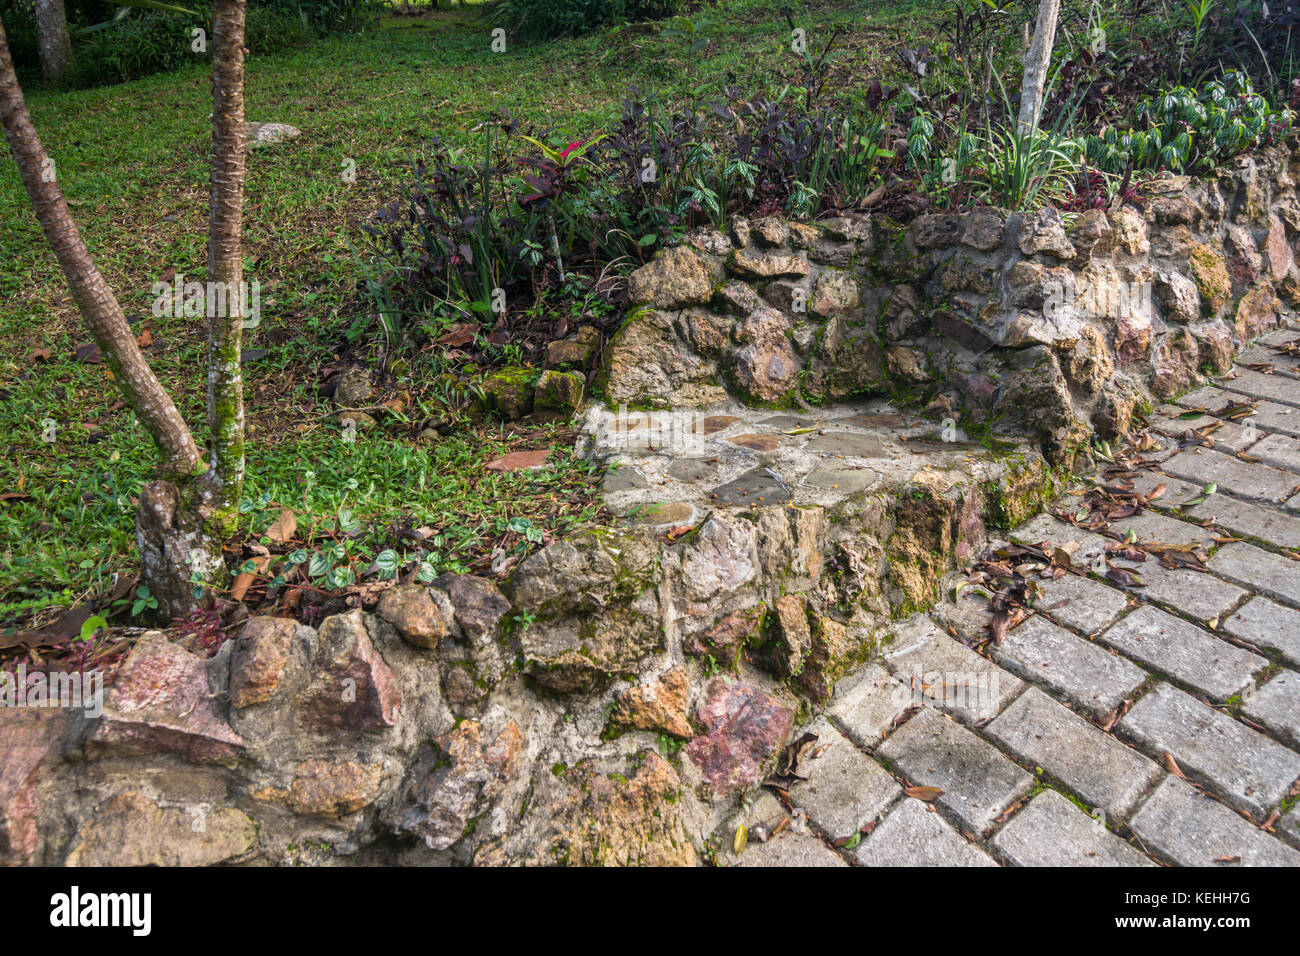 Garden Ideas Using Natural Stones For Steps And Garden Walls   Stock Image